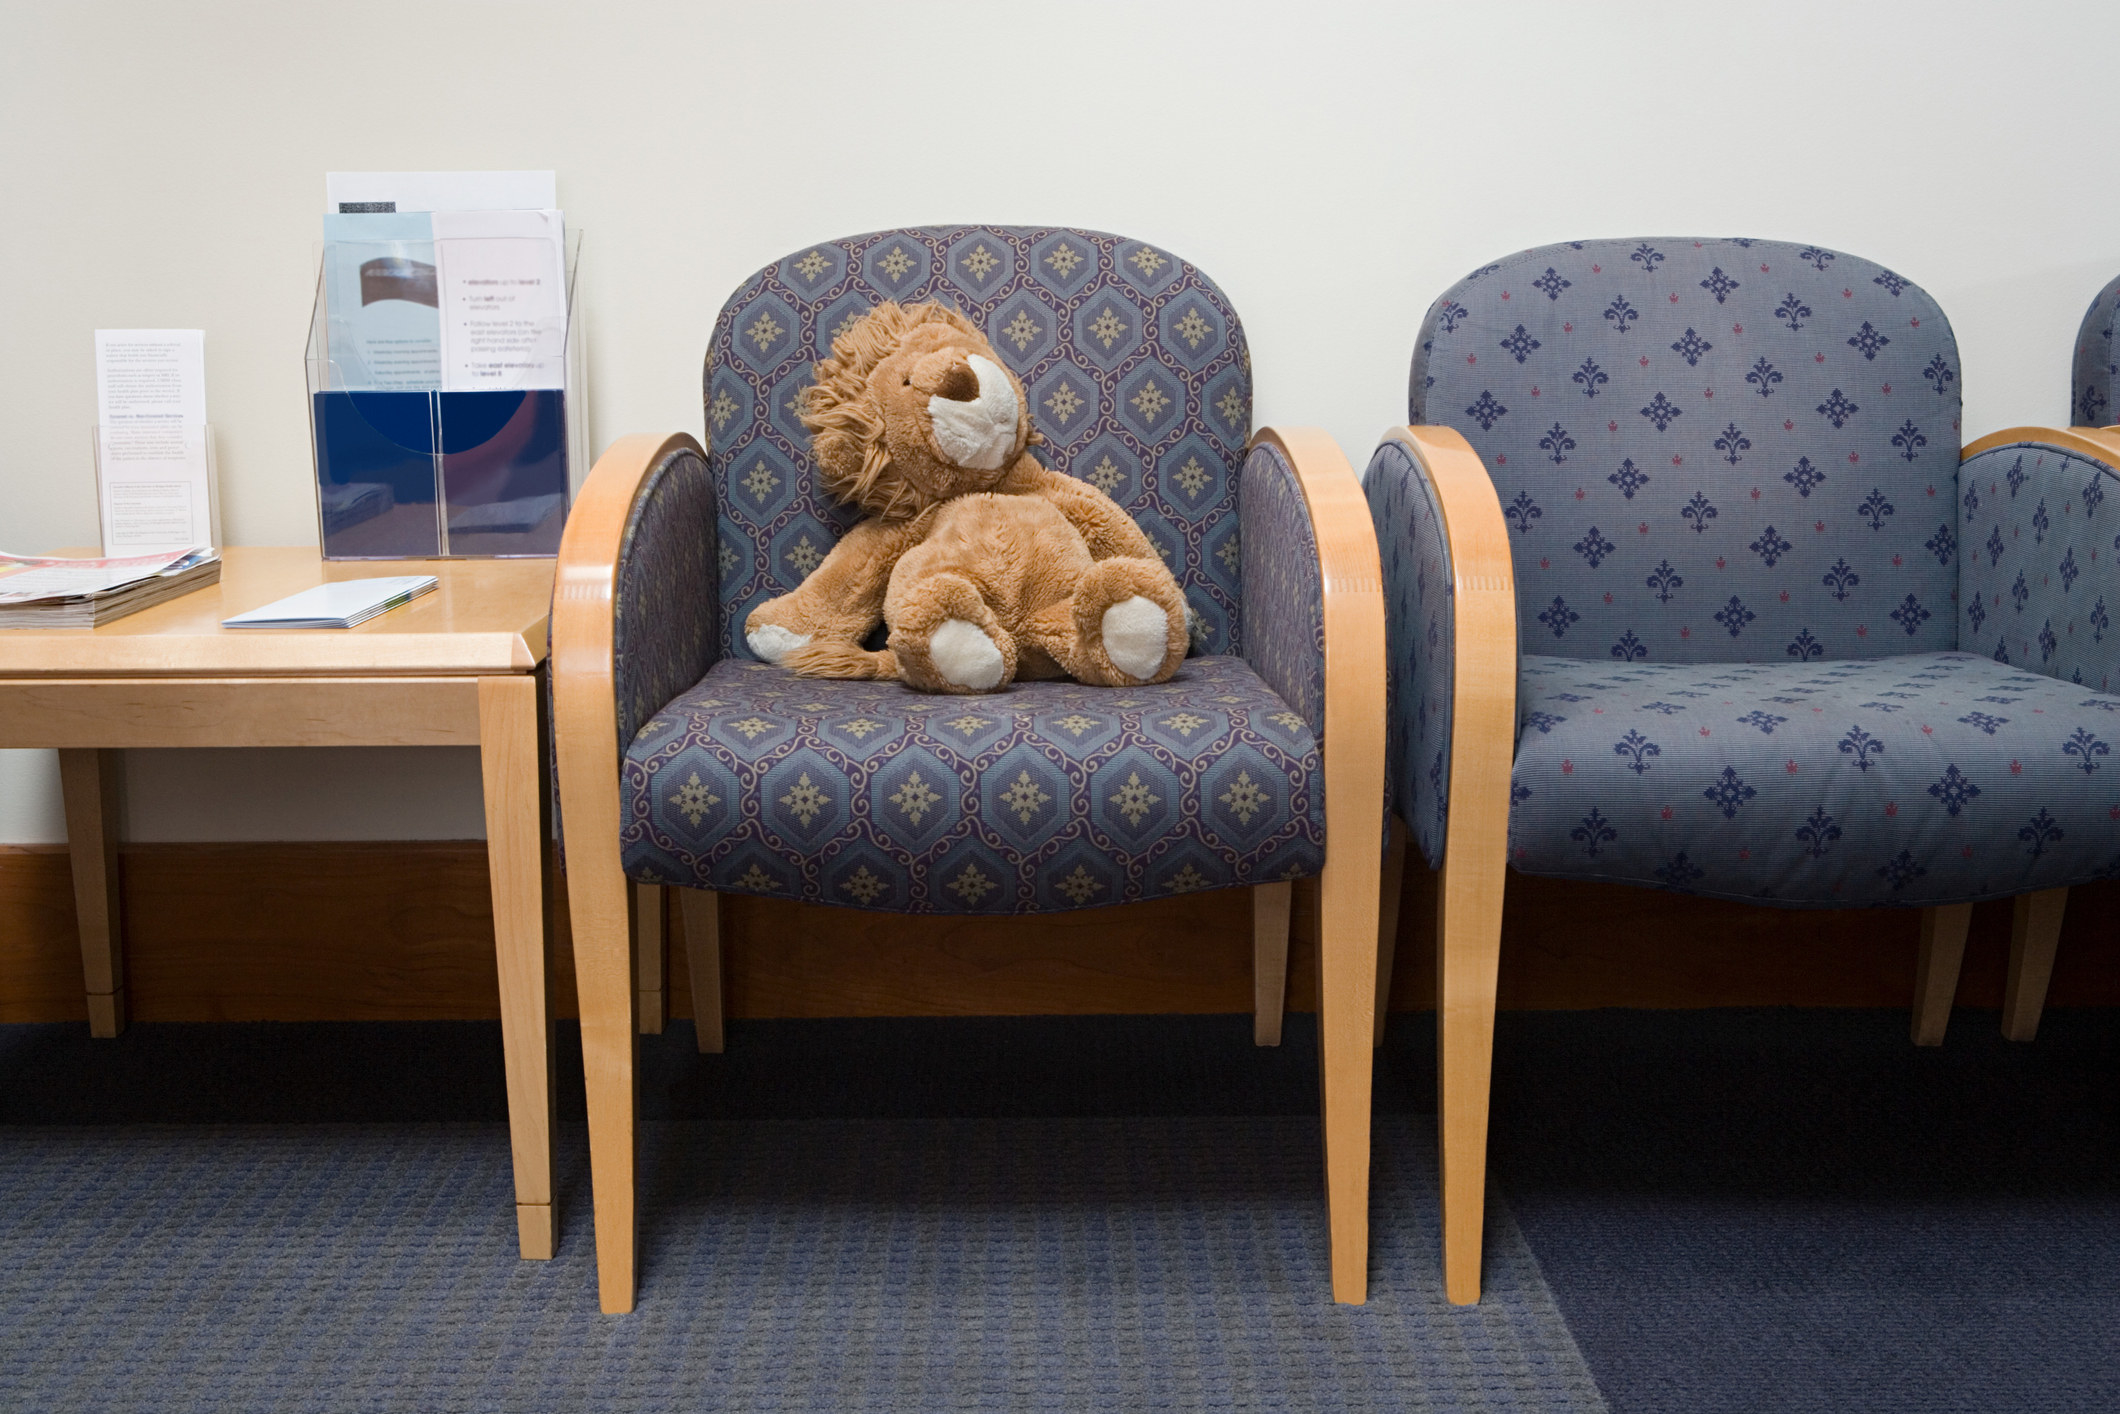 A stuffed animal lion sitting in a doctor's office waiting room.